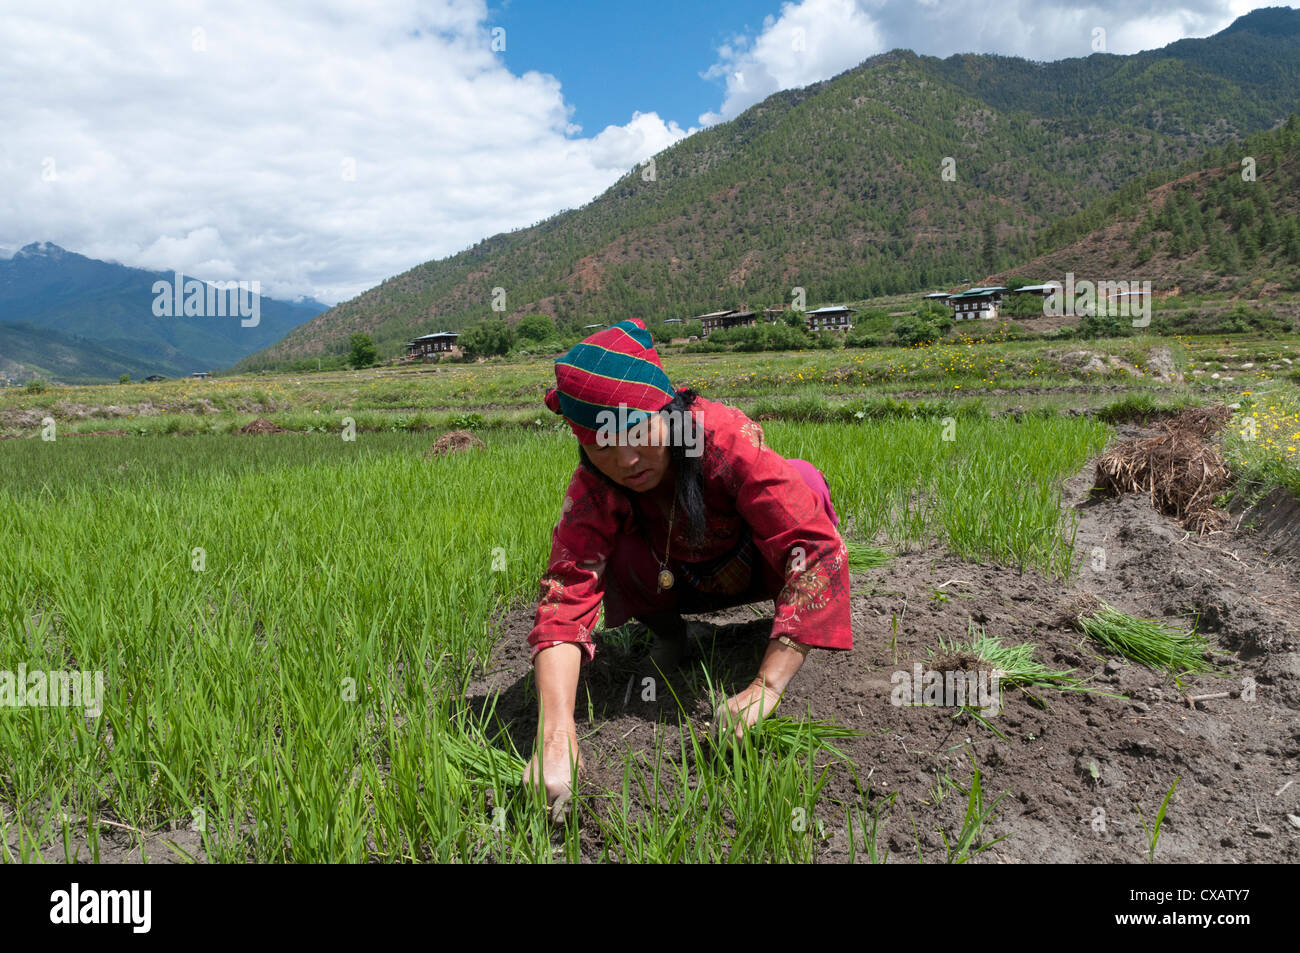 Female farmers transplanting rice shoots into rice paddies, Paro Valley, Bhutan, Asia - Stock Image